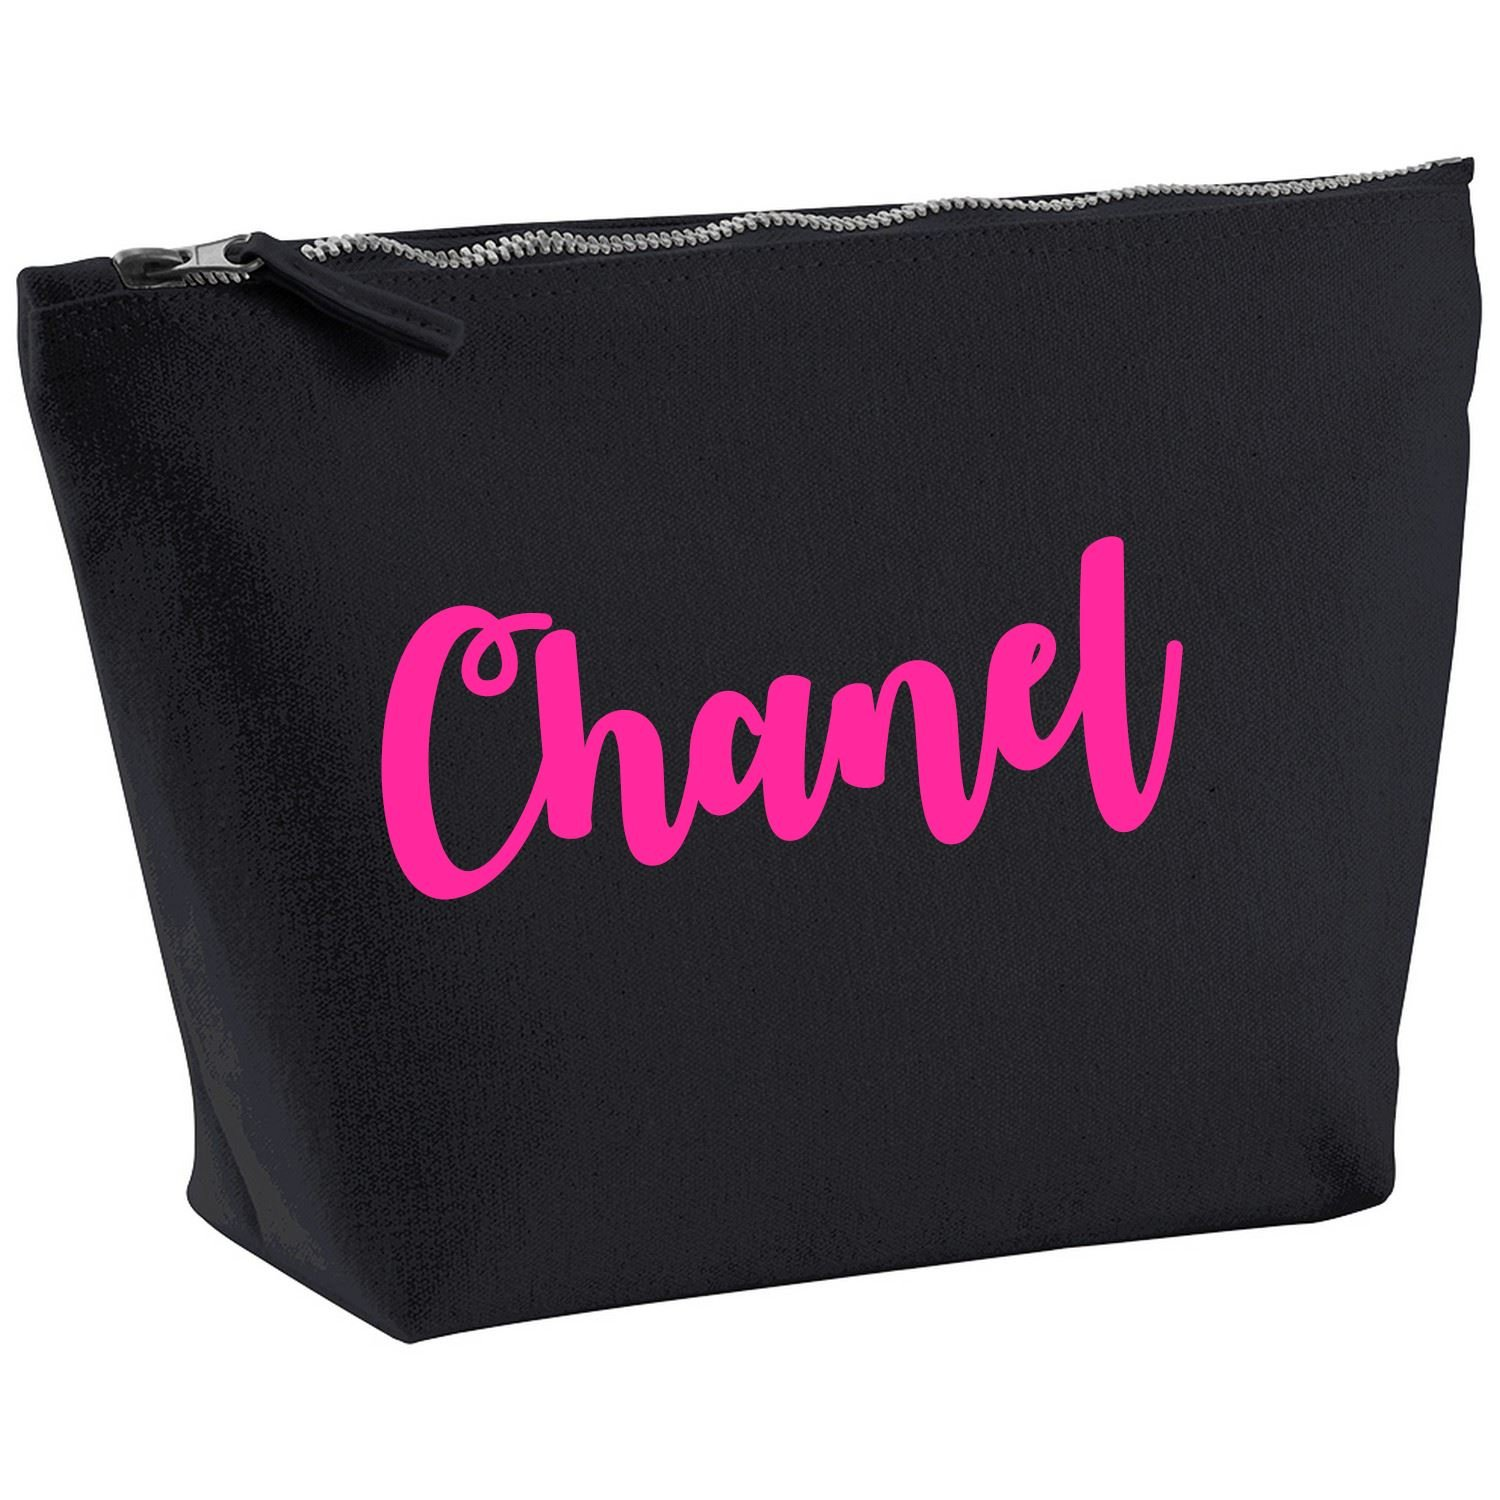 6120d593b25565 Chanel Personalised Name Cotton Canvas Black Make Up Accessory Bag Wash Bag  Size 14x20cm. The perfect personalised Gift for All occasion, Christmas, ...